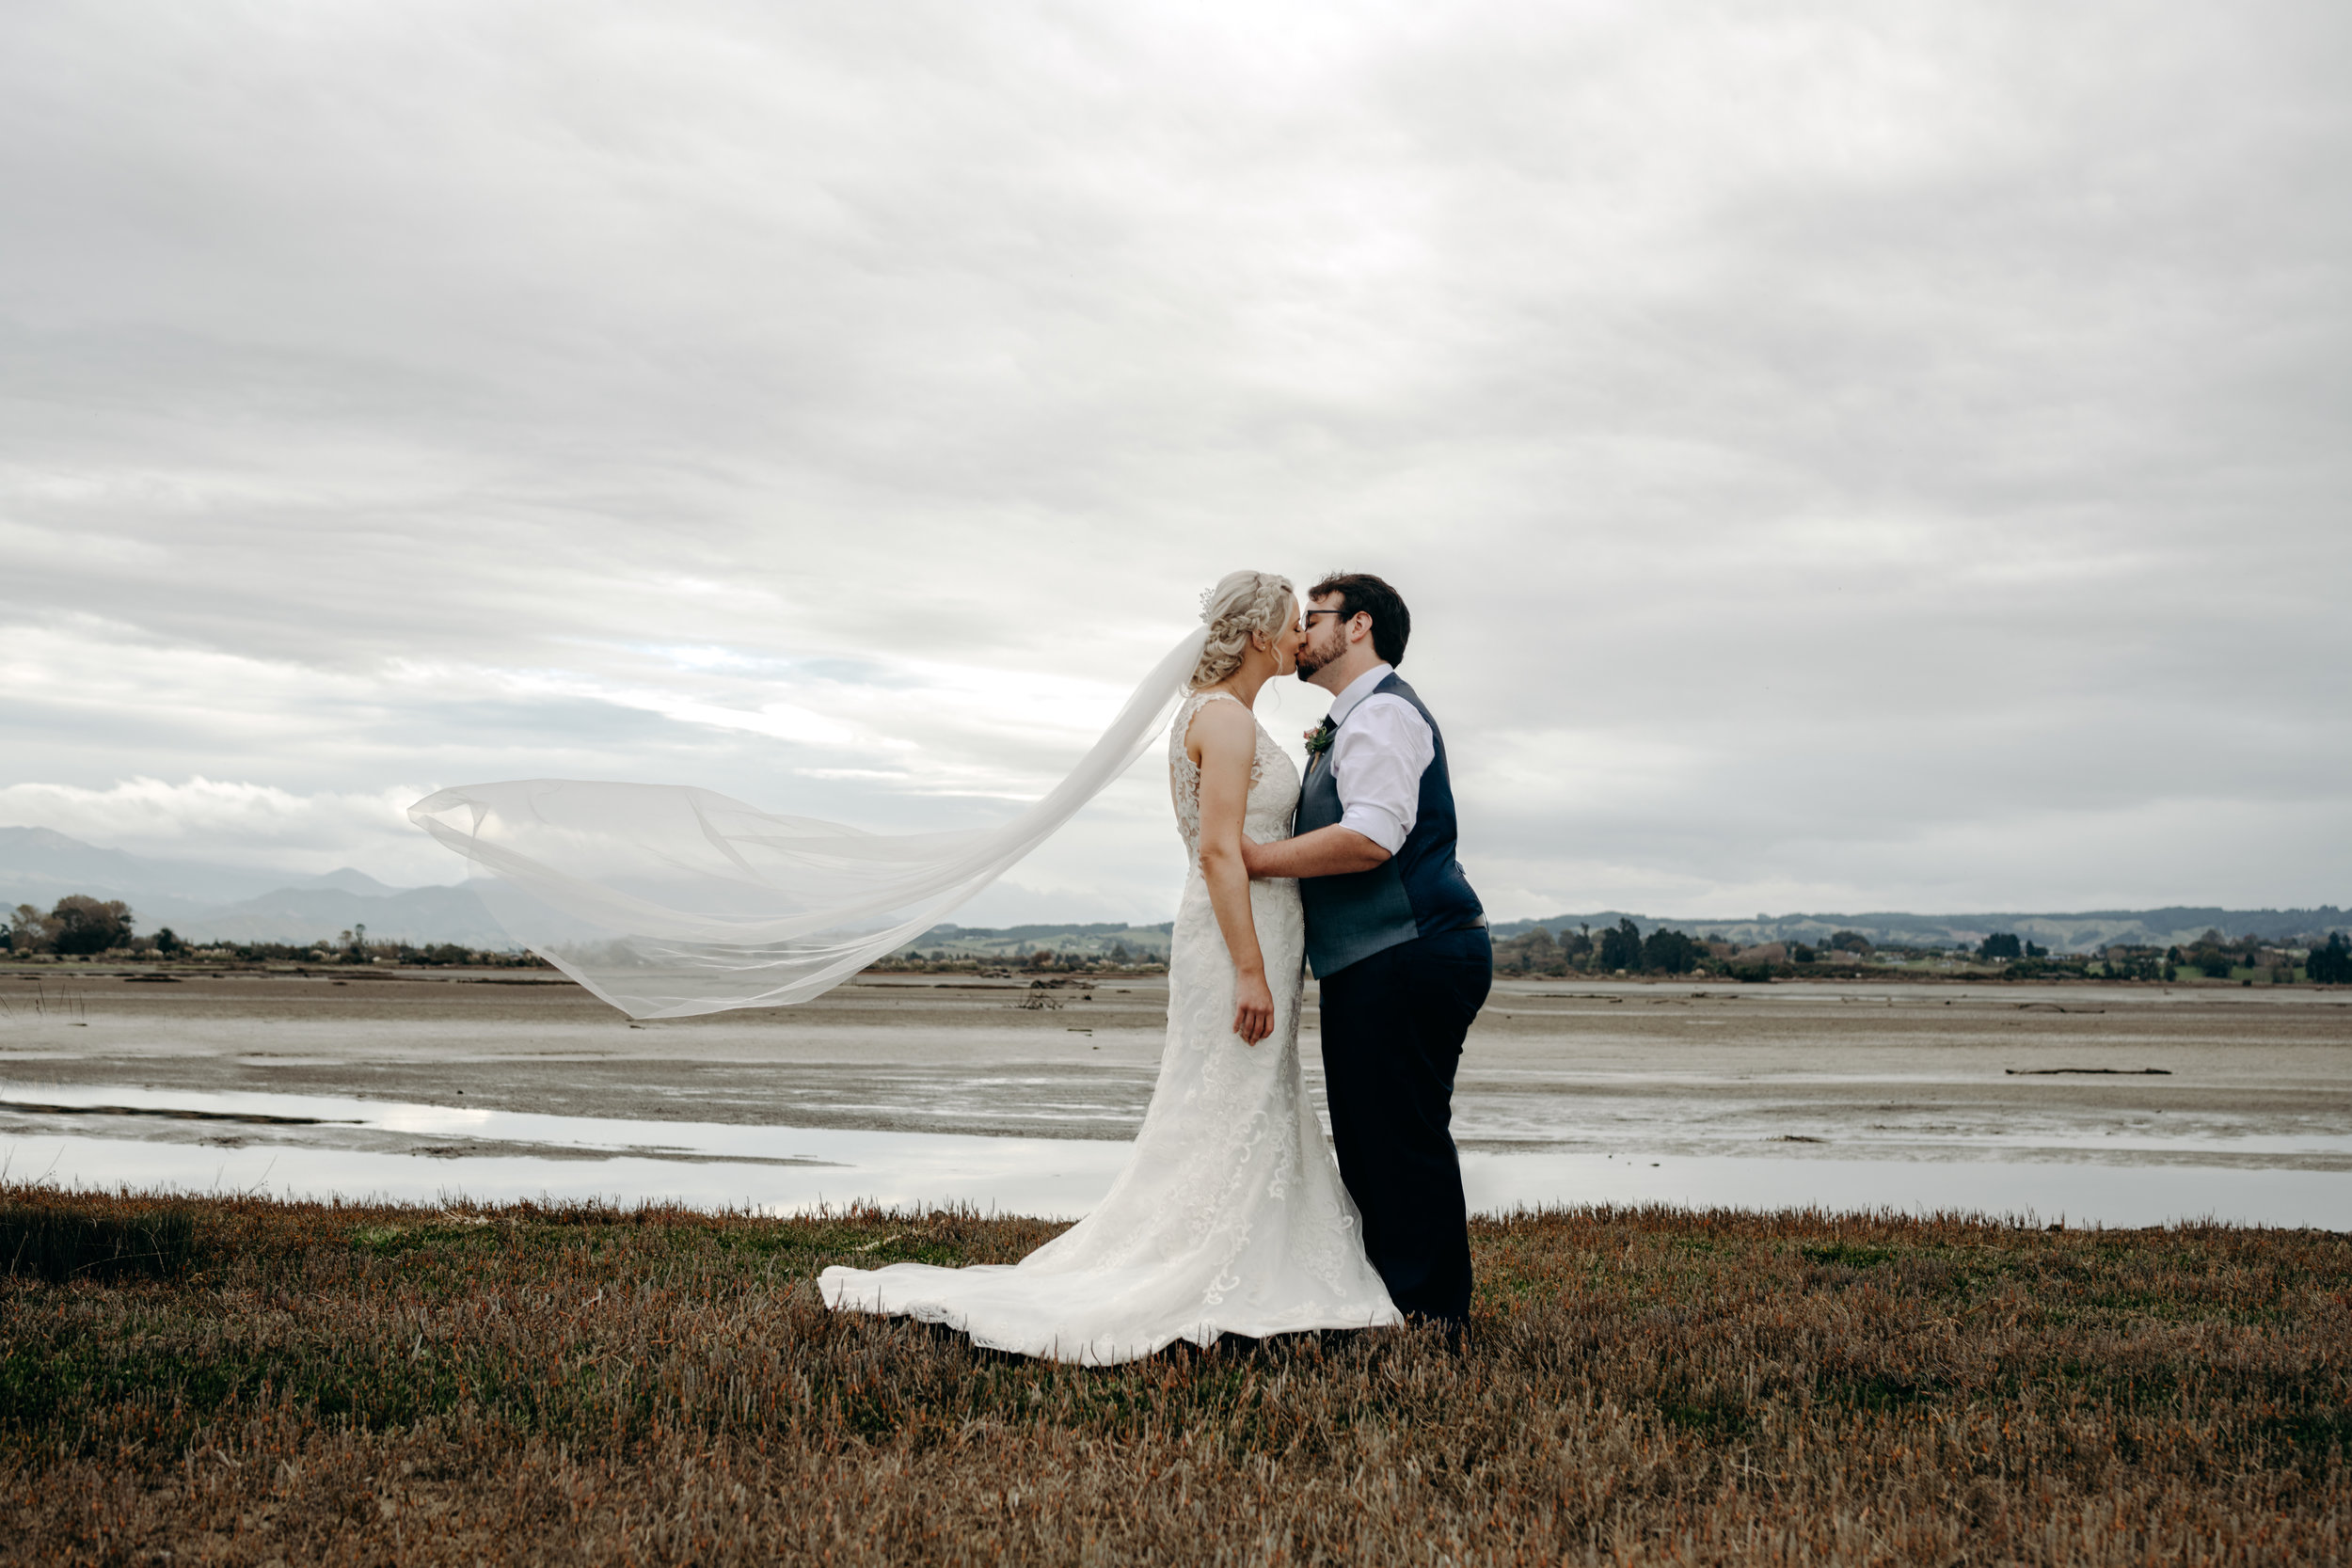 Playhouse-Wedding-Nelson-New-Zealand-Think-Visual-Photography-Photographer